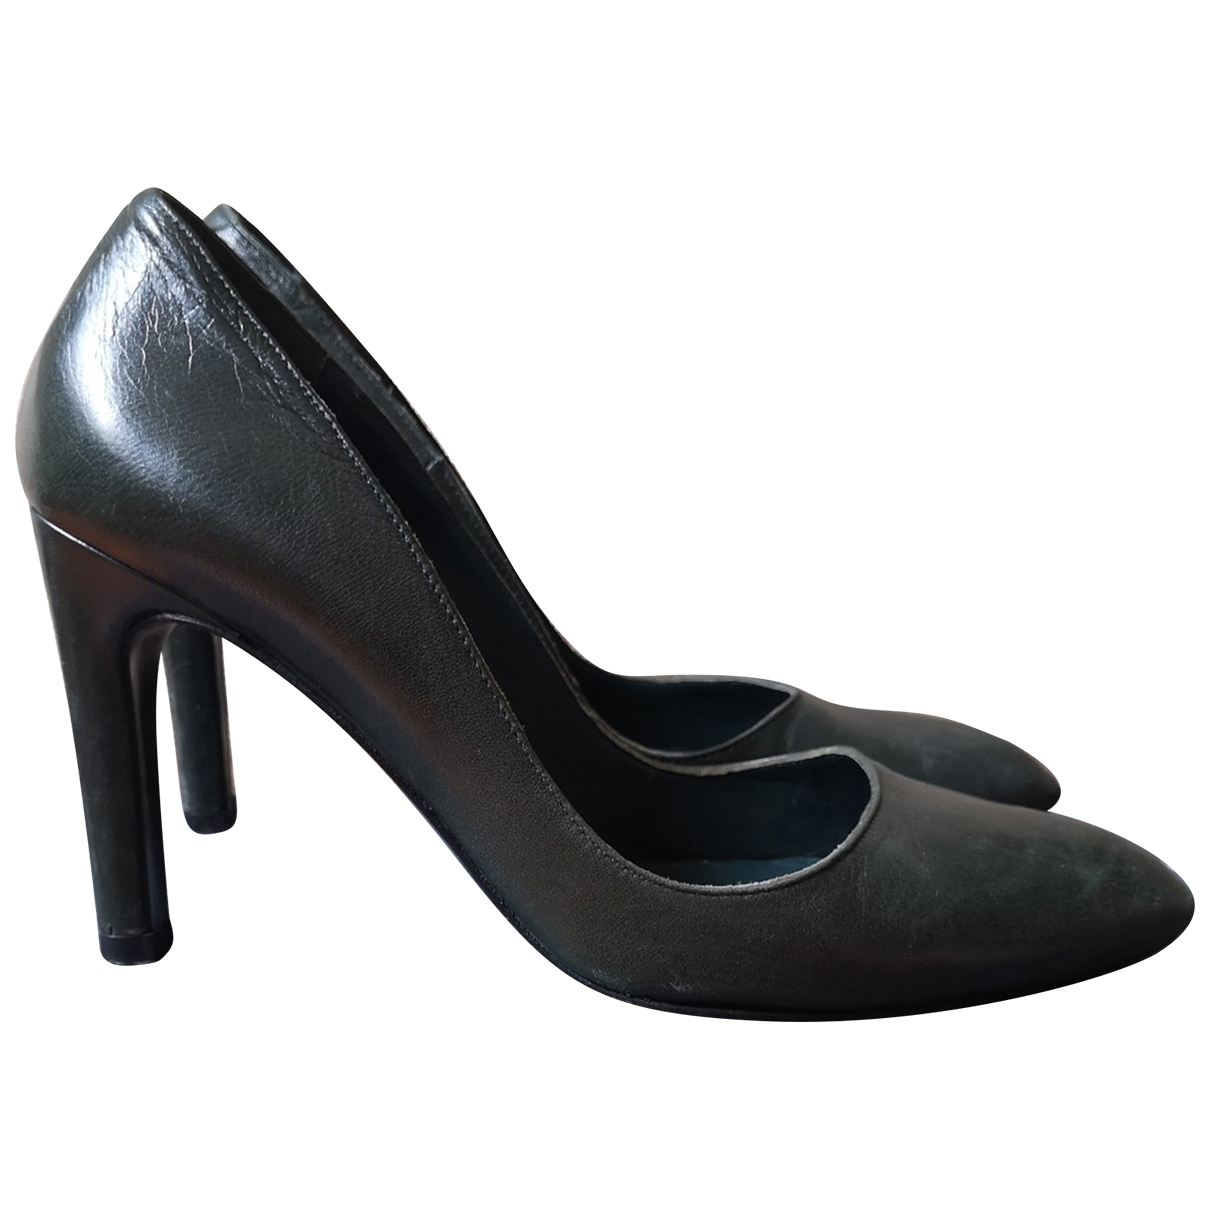 Momoni \N Green Leather Heels for Women 38 EU